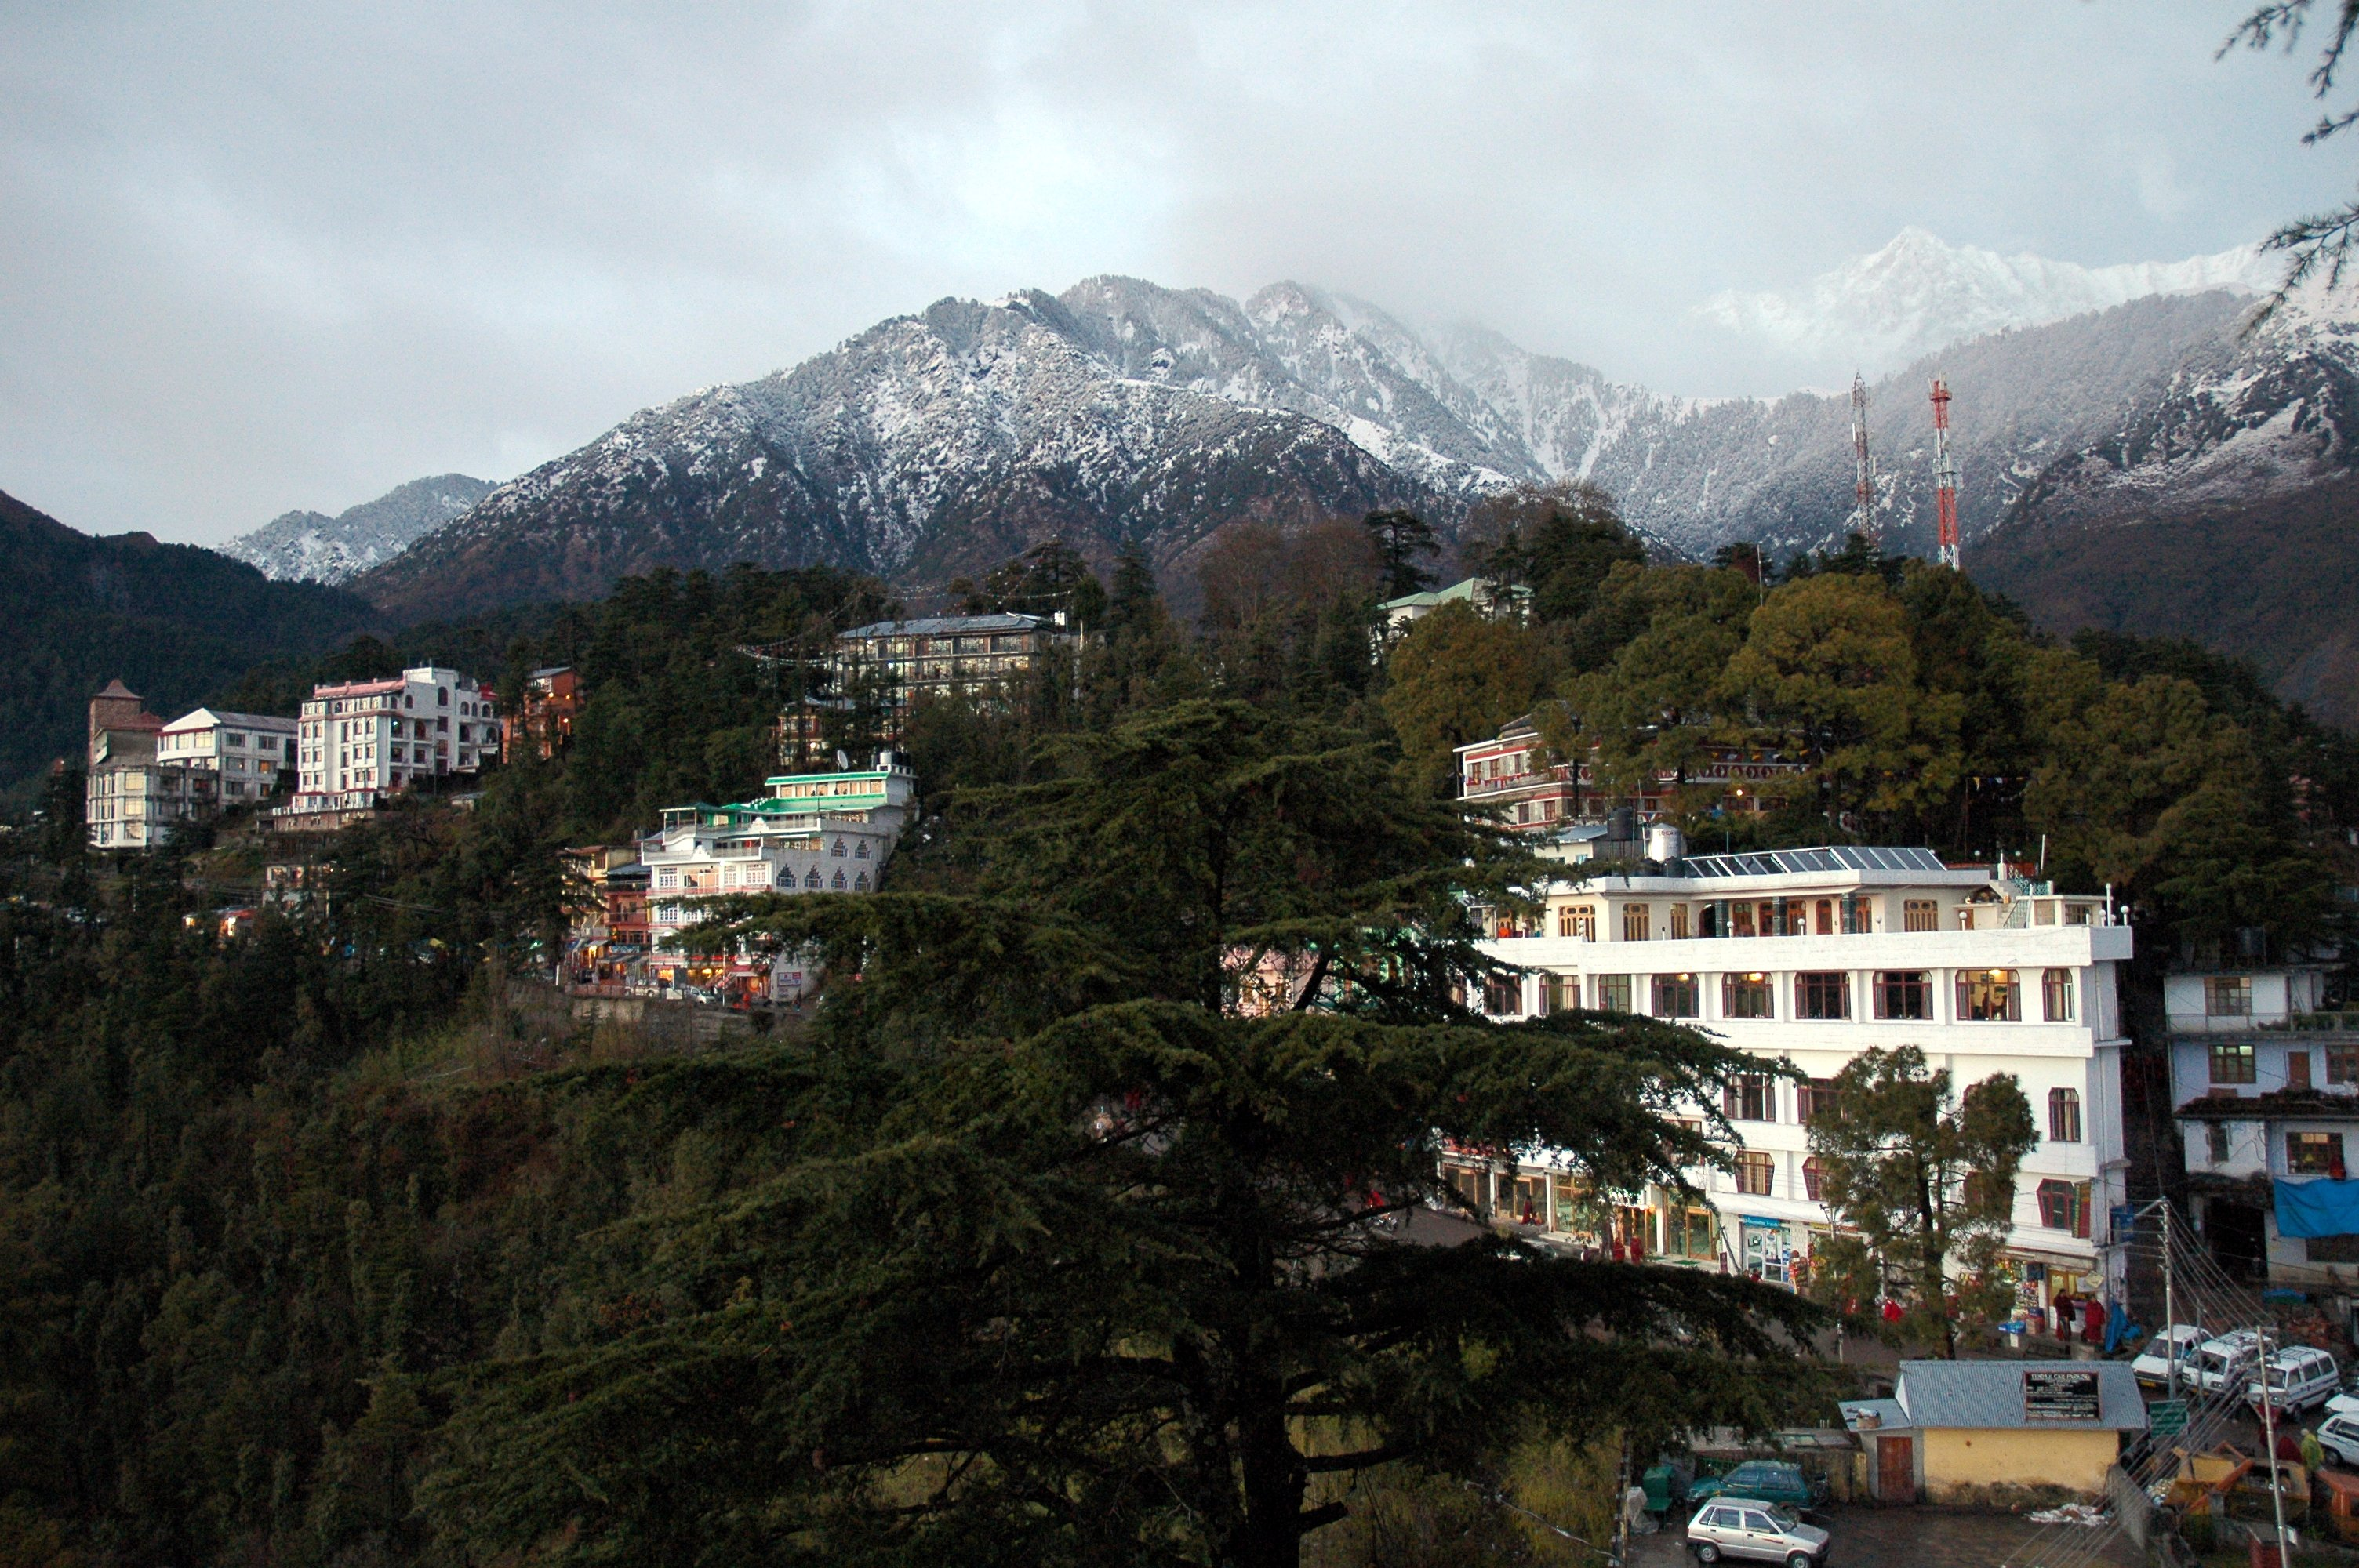 McLeod Ganj and the snowy peaks near Dharamsala